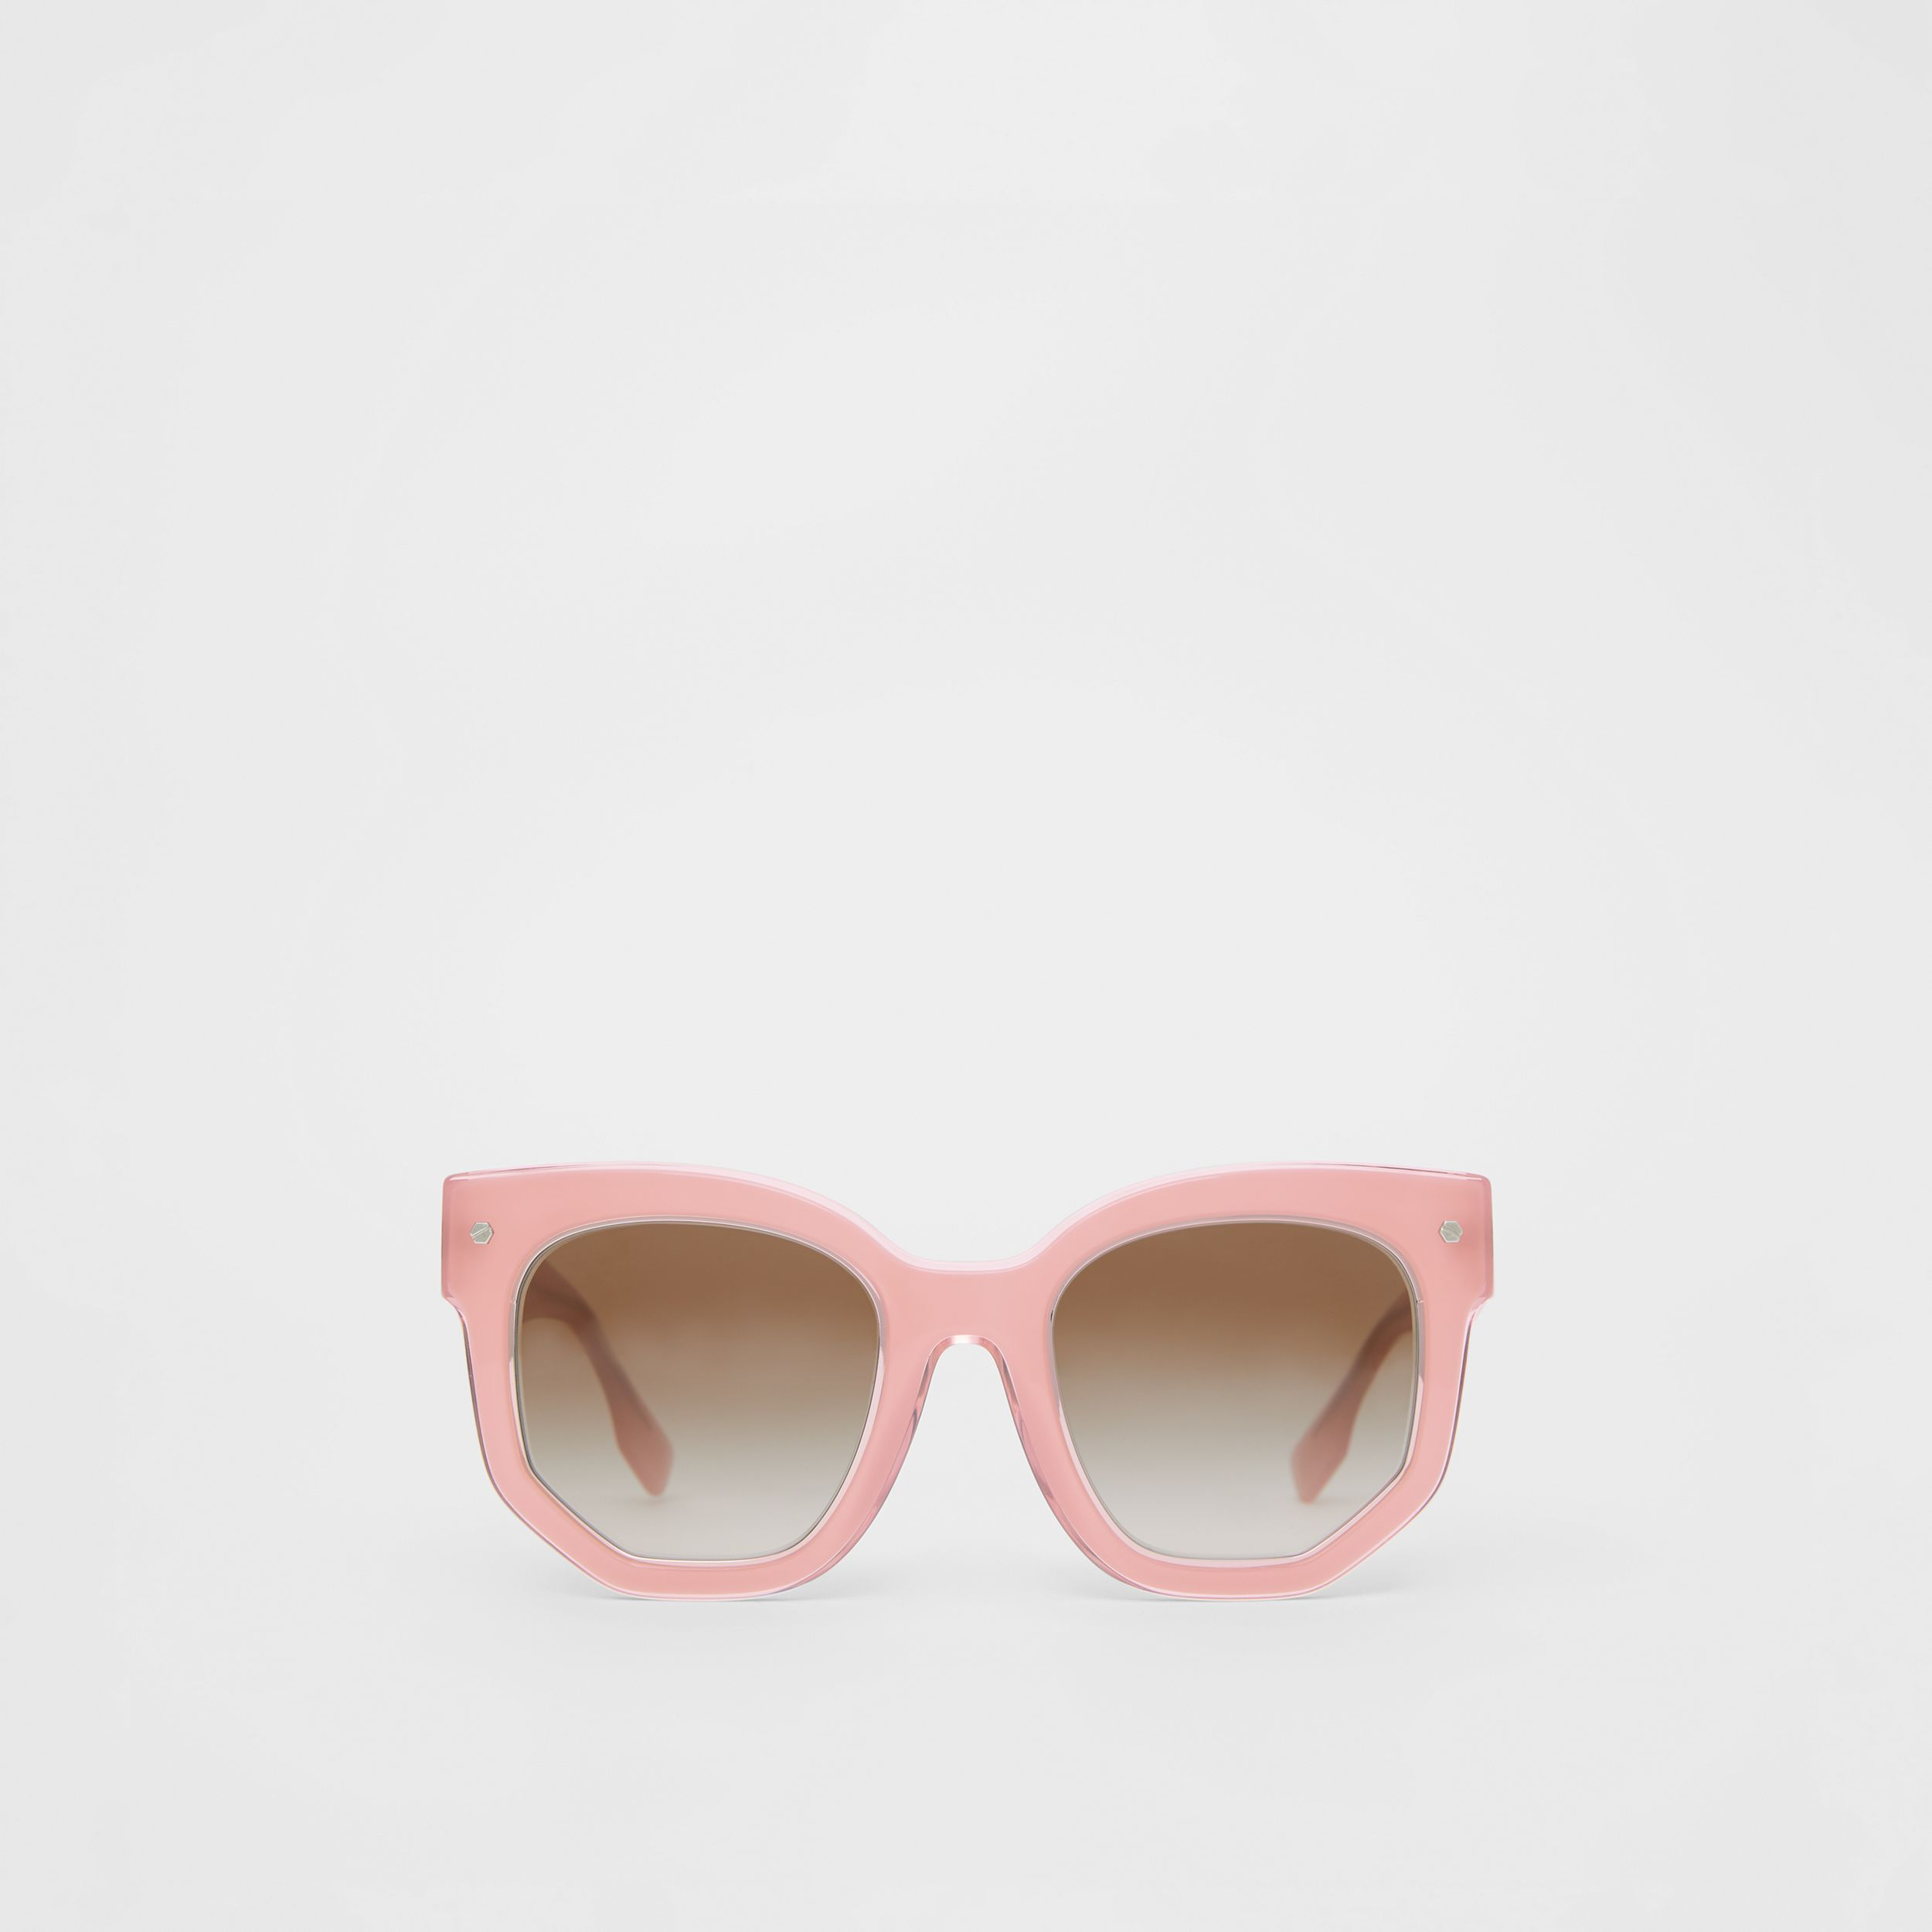 Geometric Frame Sunglasses in Pink - Women | Burberry Singapore - 1